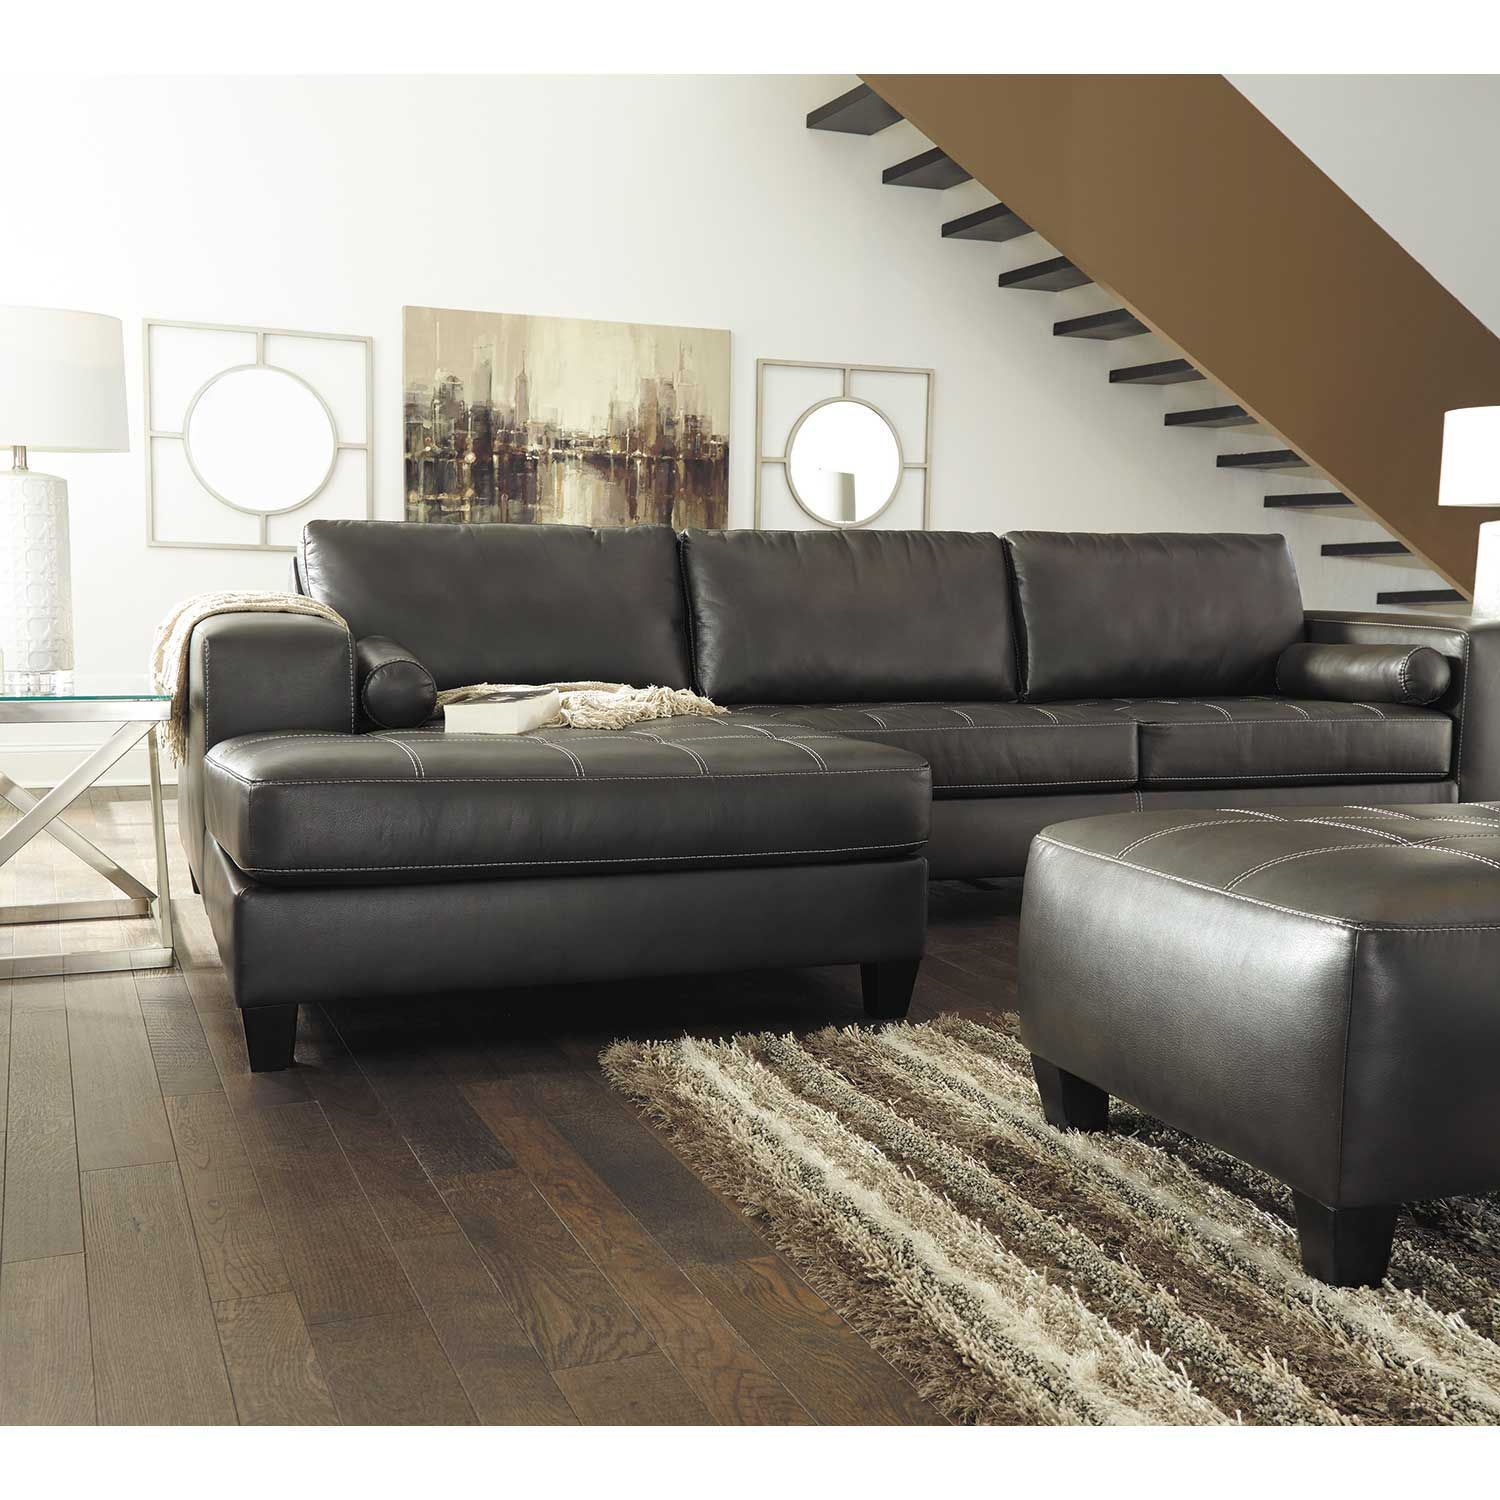 Nokomis 2 Piece Sectional With Raf Chaise – Indy Best Regarding Evan 2 Piece Sectionals With Raf Chaise (View 11 of 15)